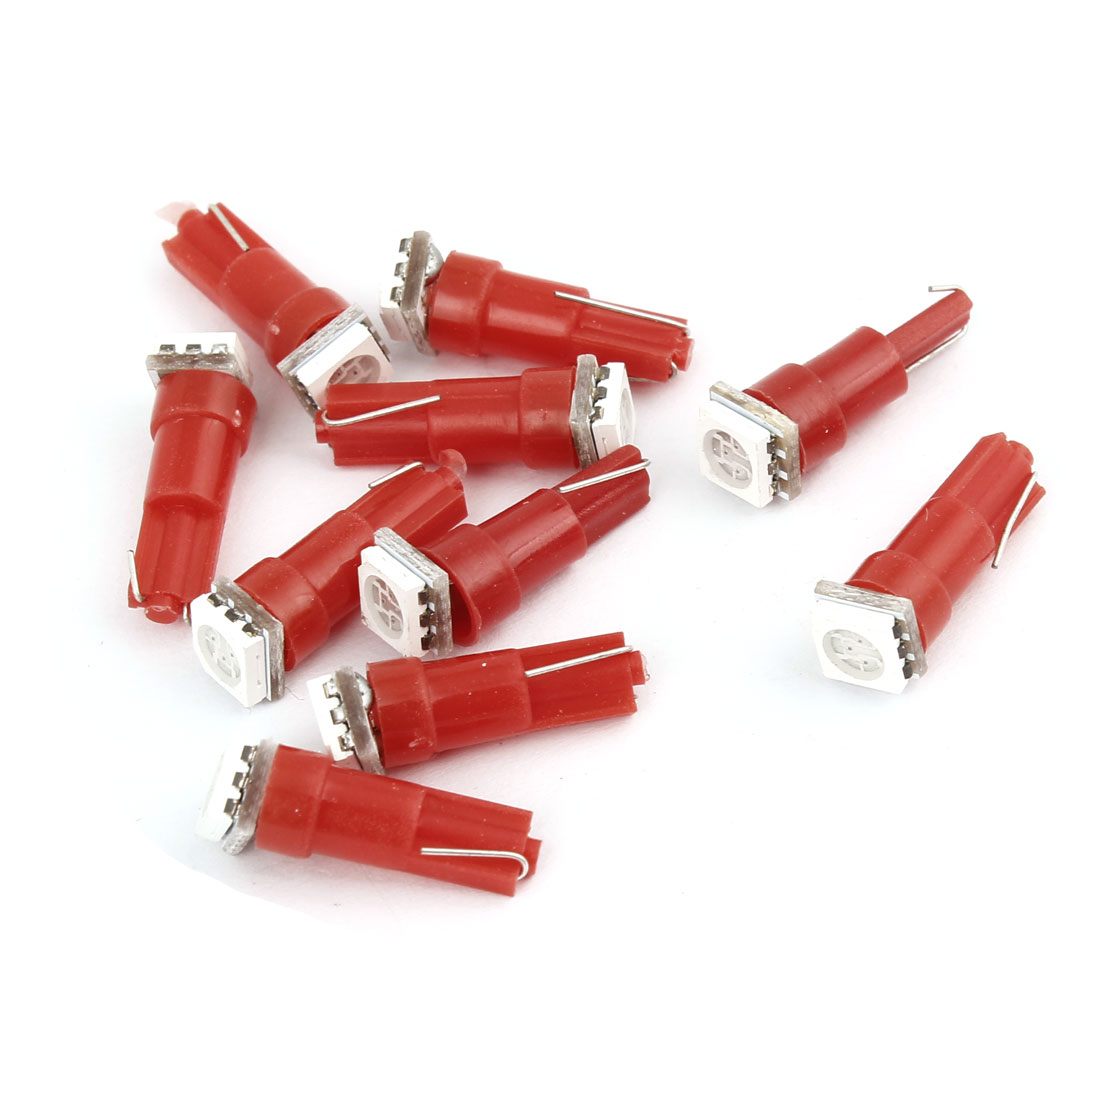 10 Pcs Wedge T5 5050 SMD LED Bulbs Dashboard Gauge Lights Turning Lamps Red 18 27 37 Internal